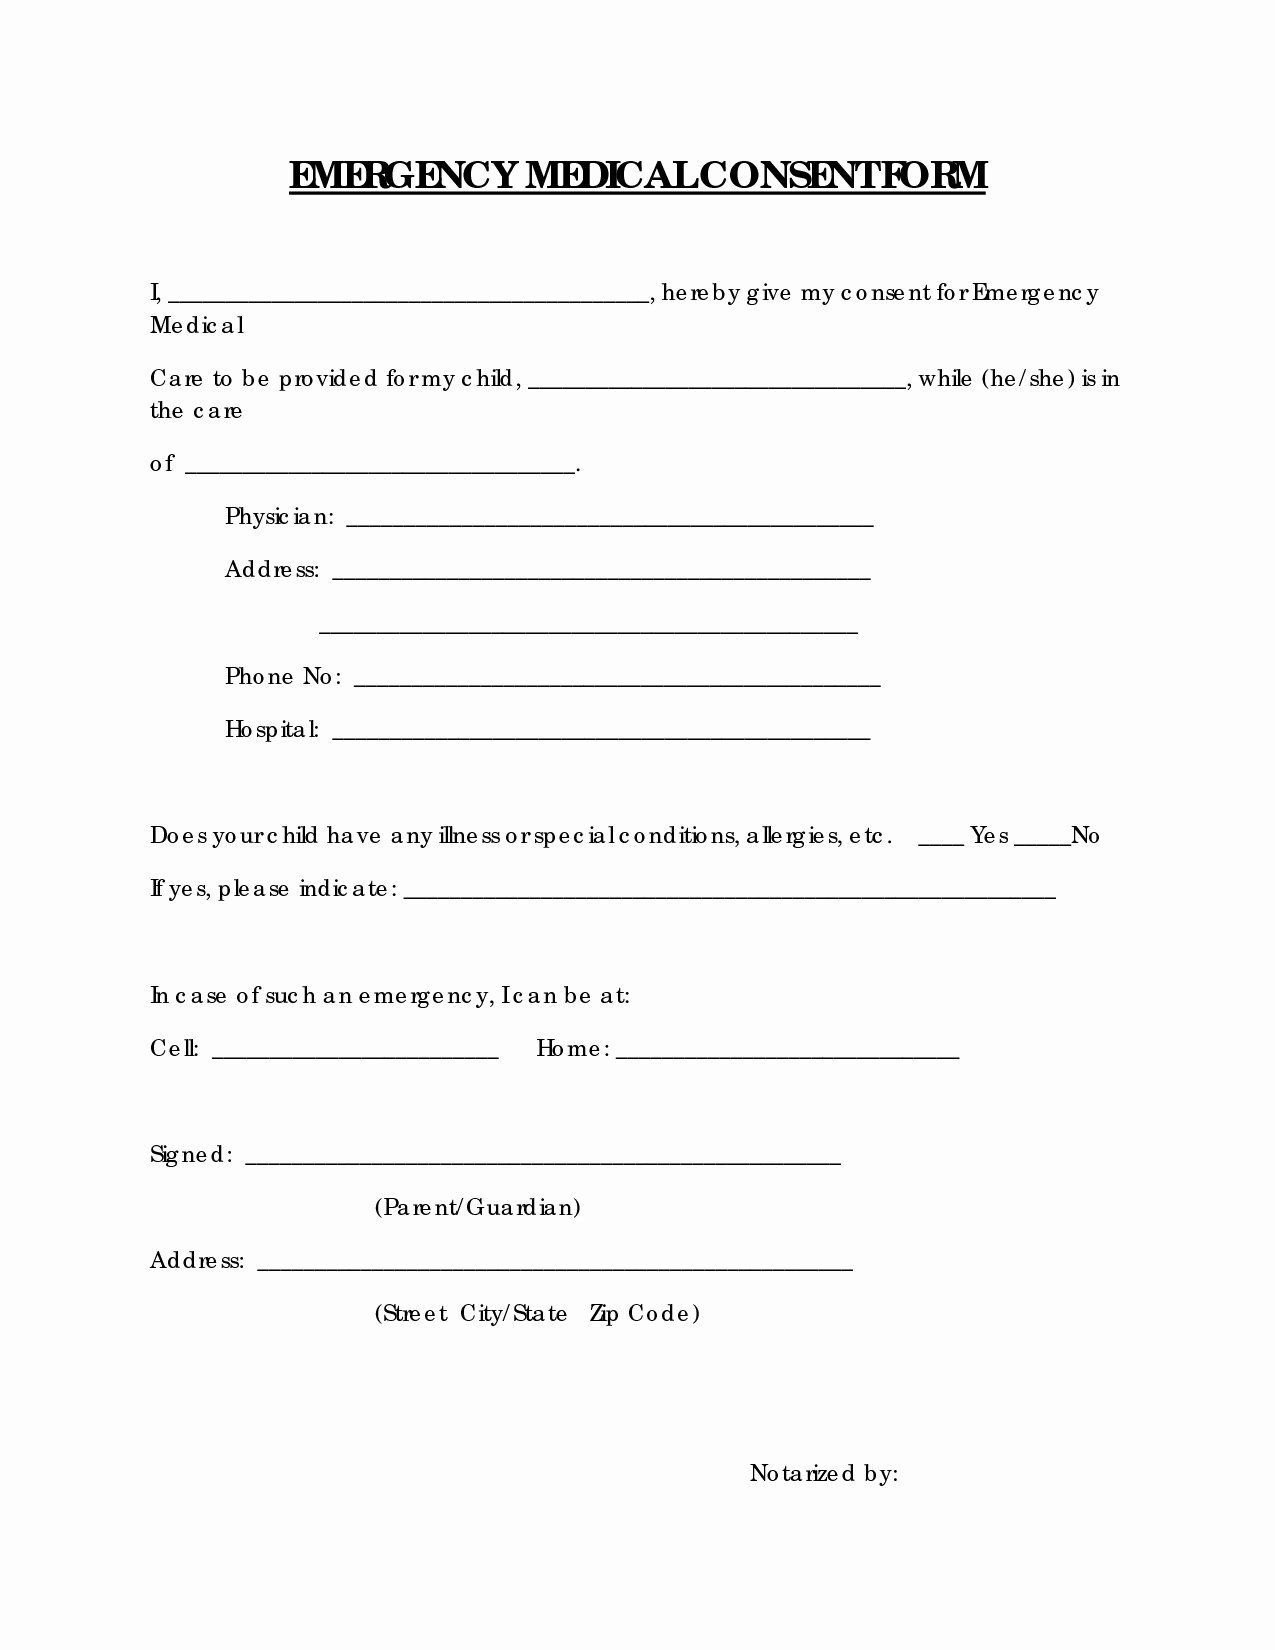 Child Medical Consent form Template Best Of Medical Consent Letter for Grandparents Template